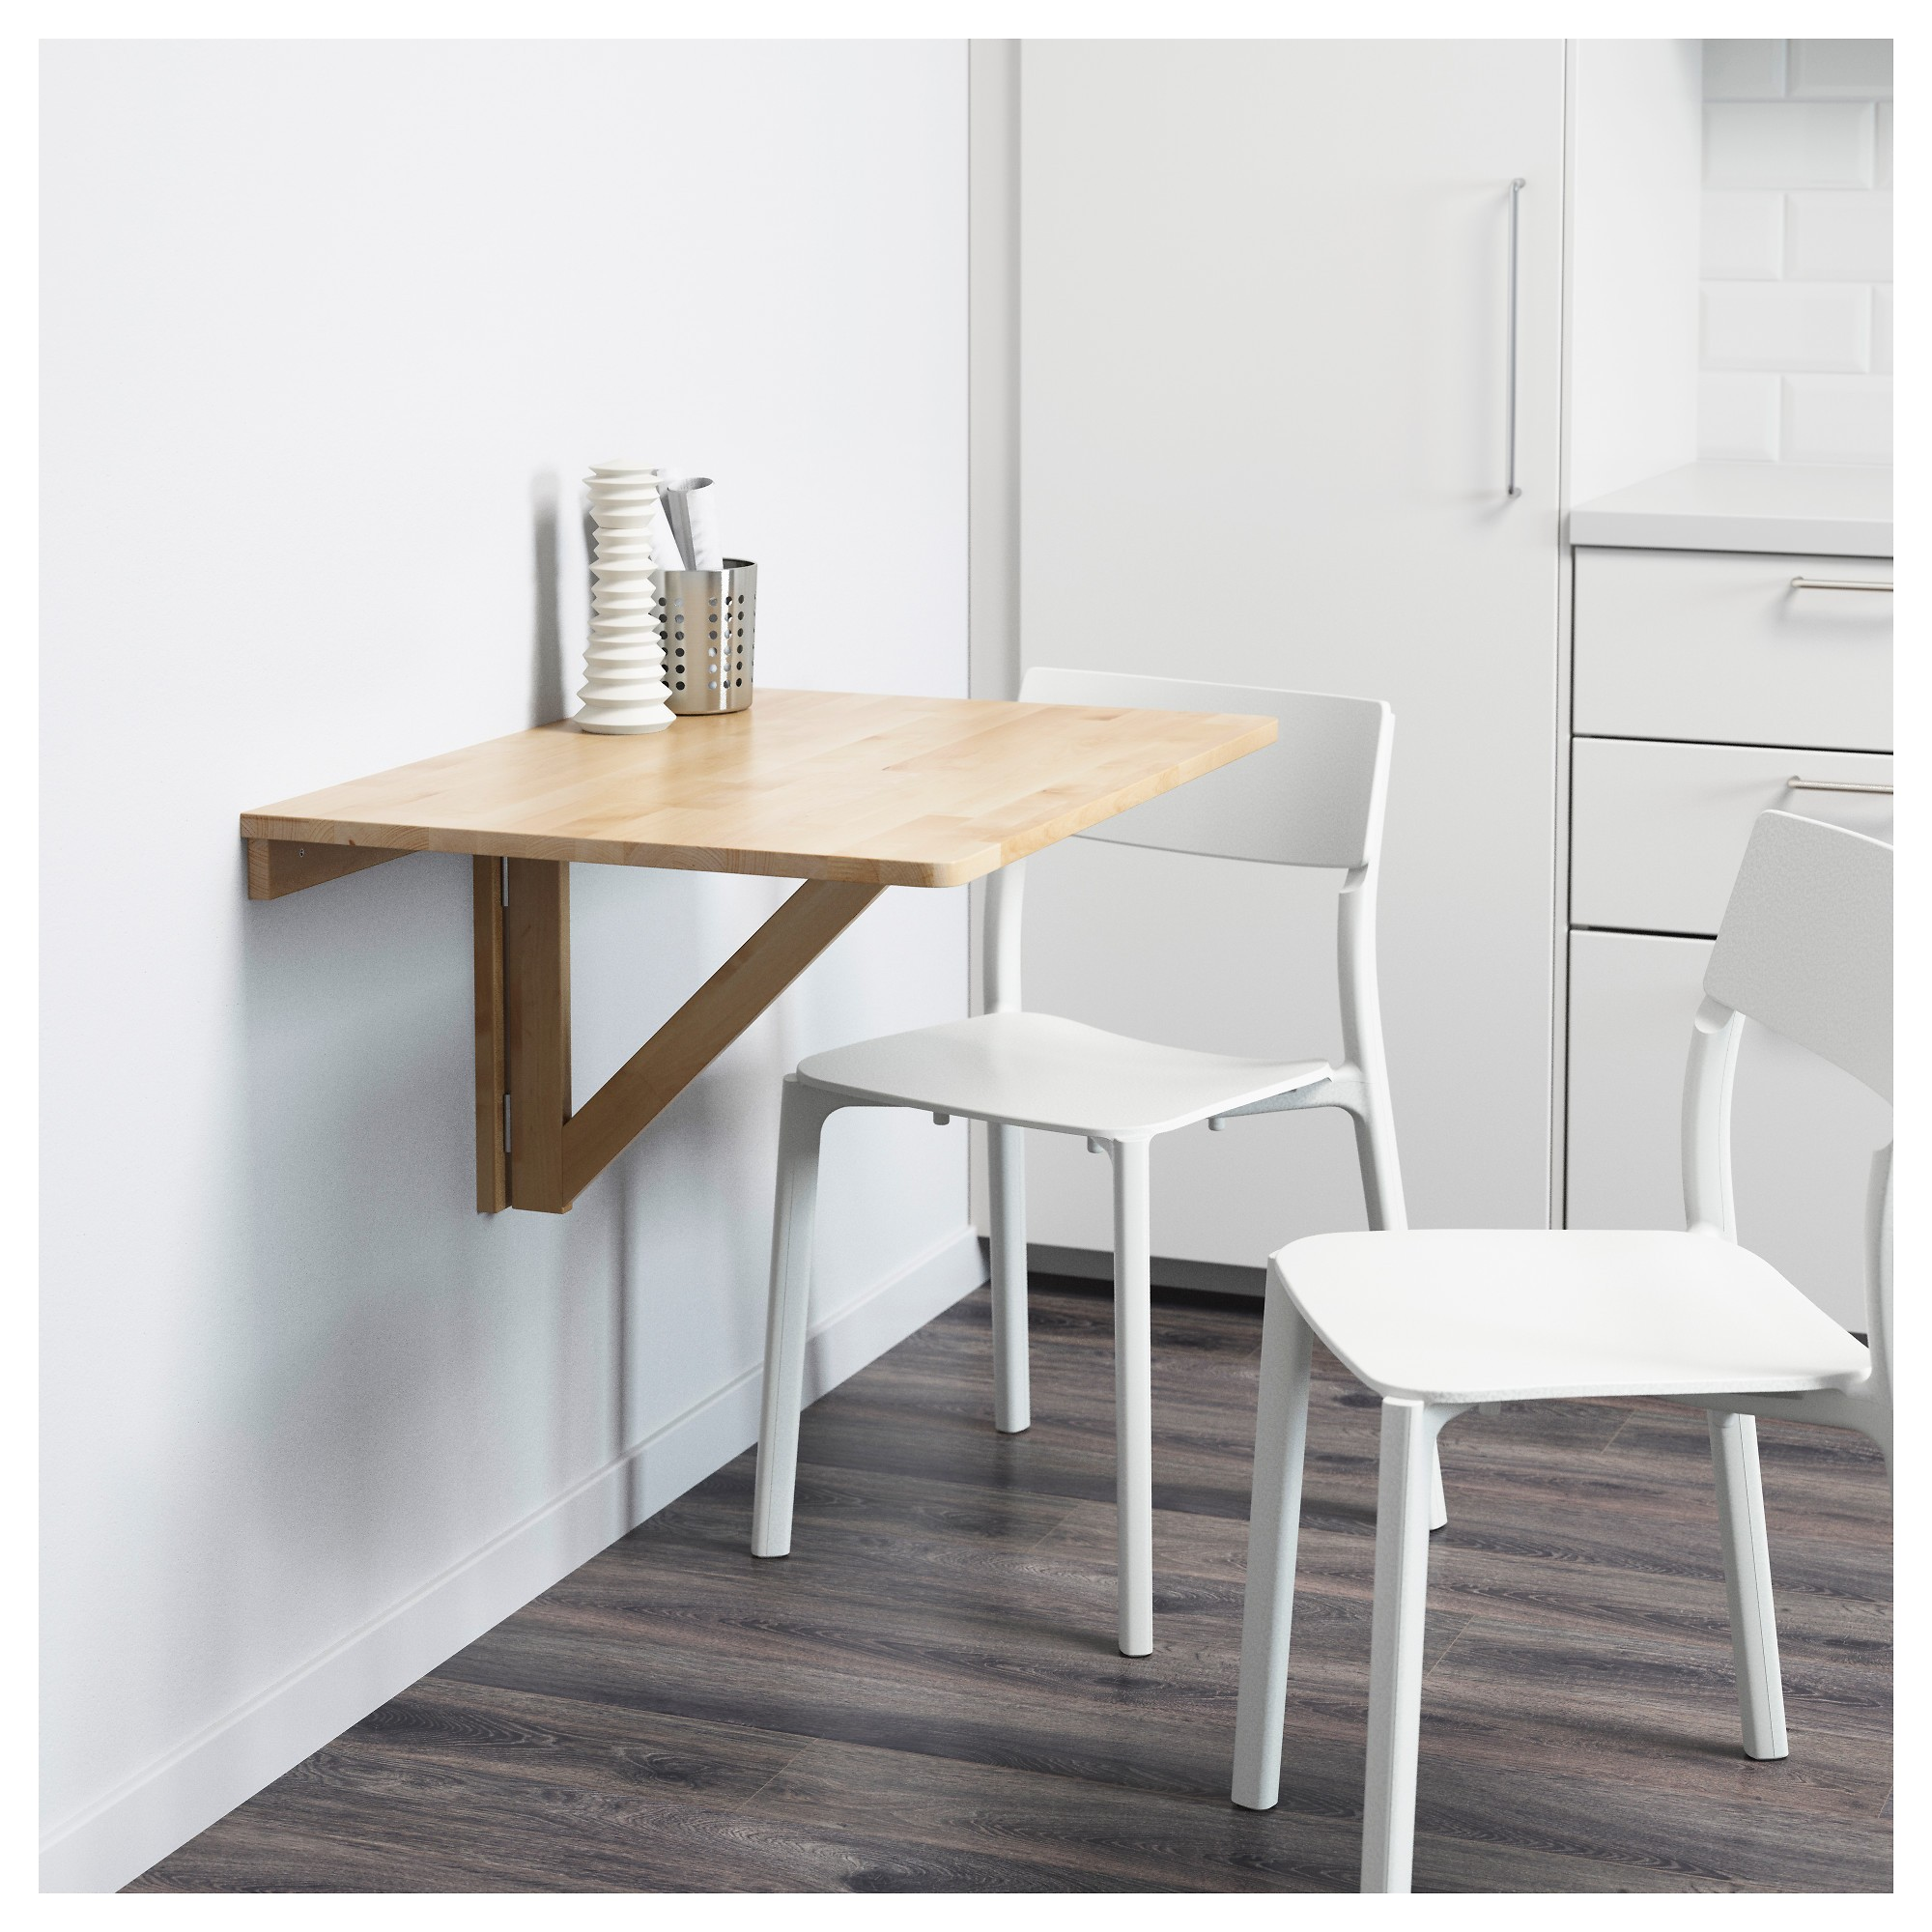 Table cuisine pliante murale ikea cuisine id es de for Table de cuisine pliante murale